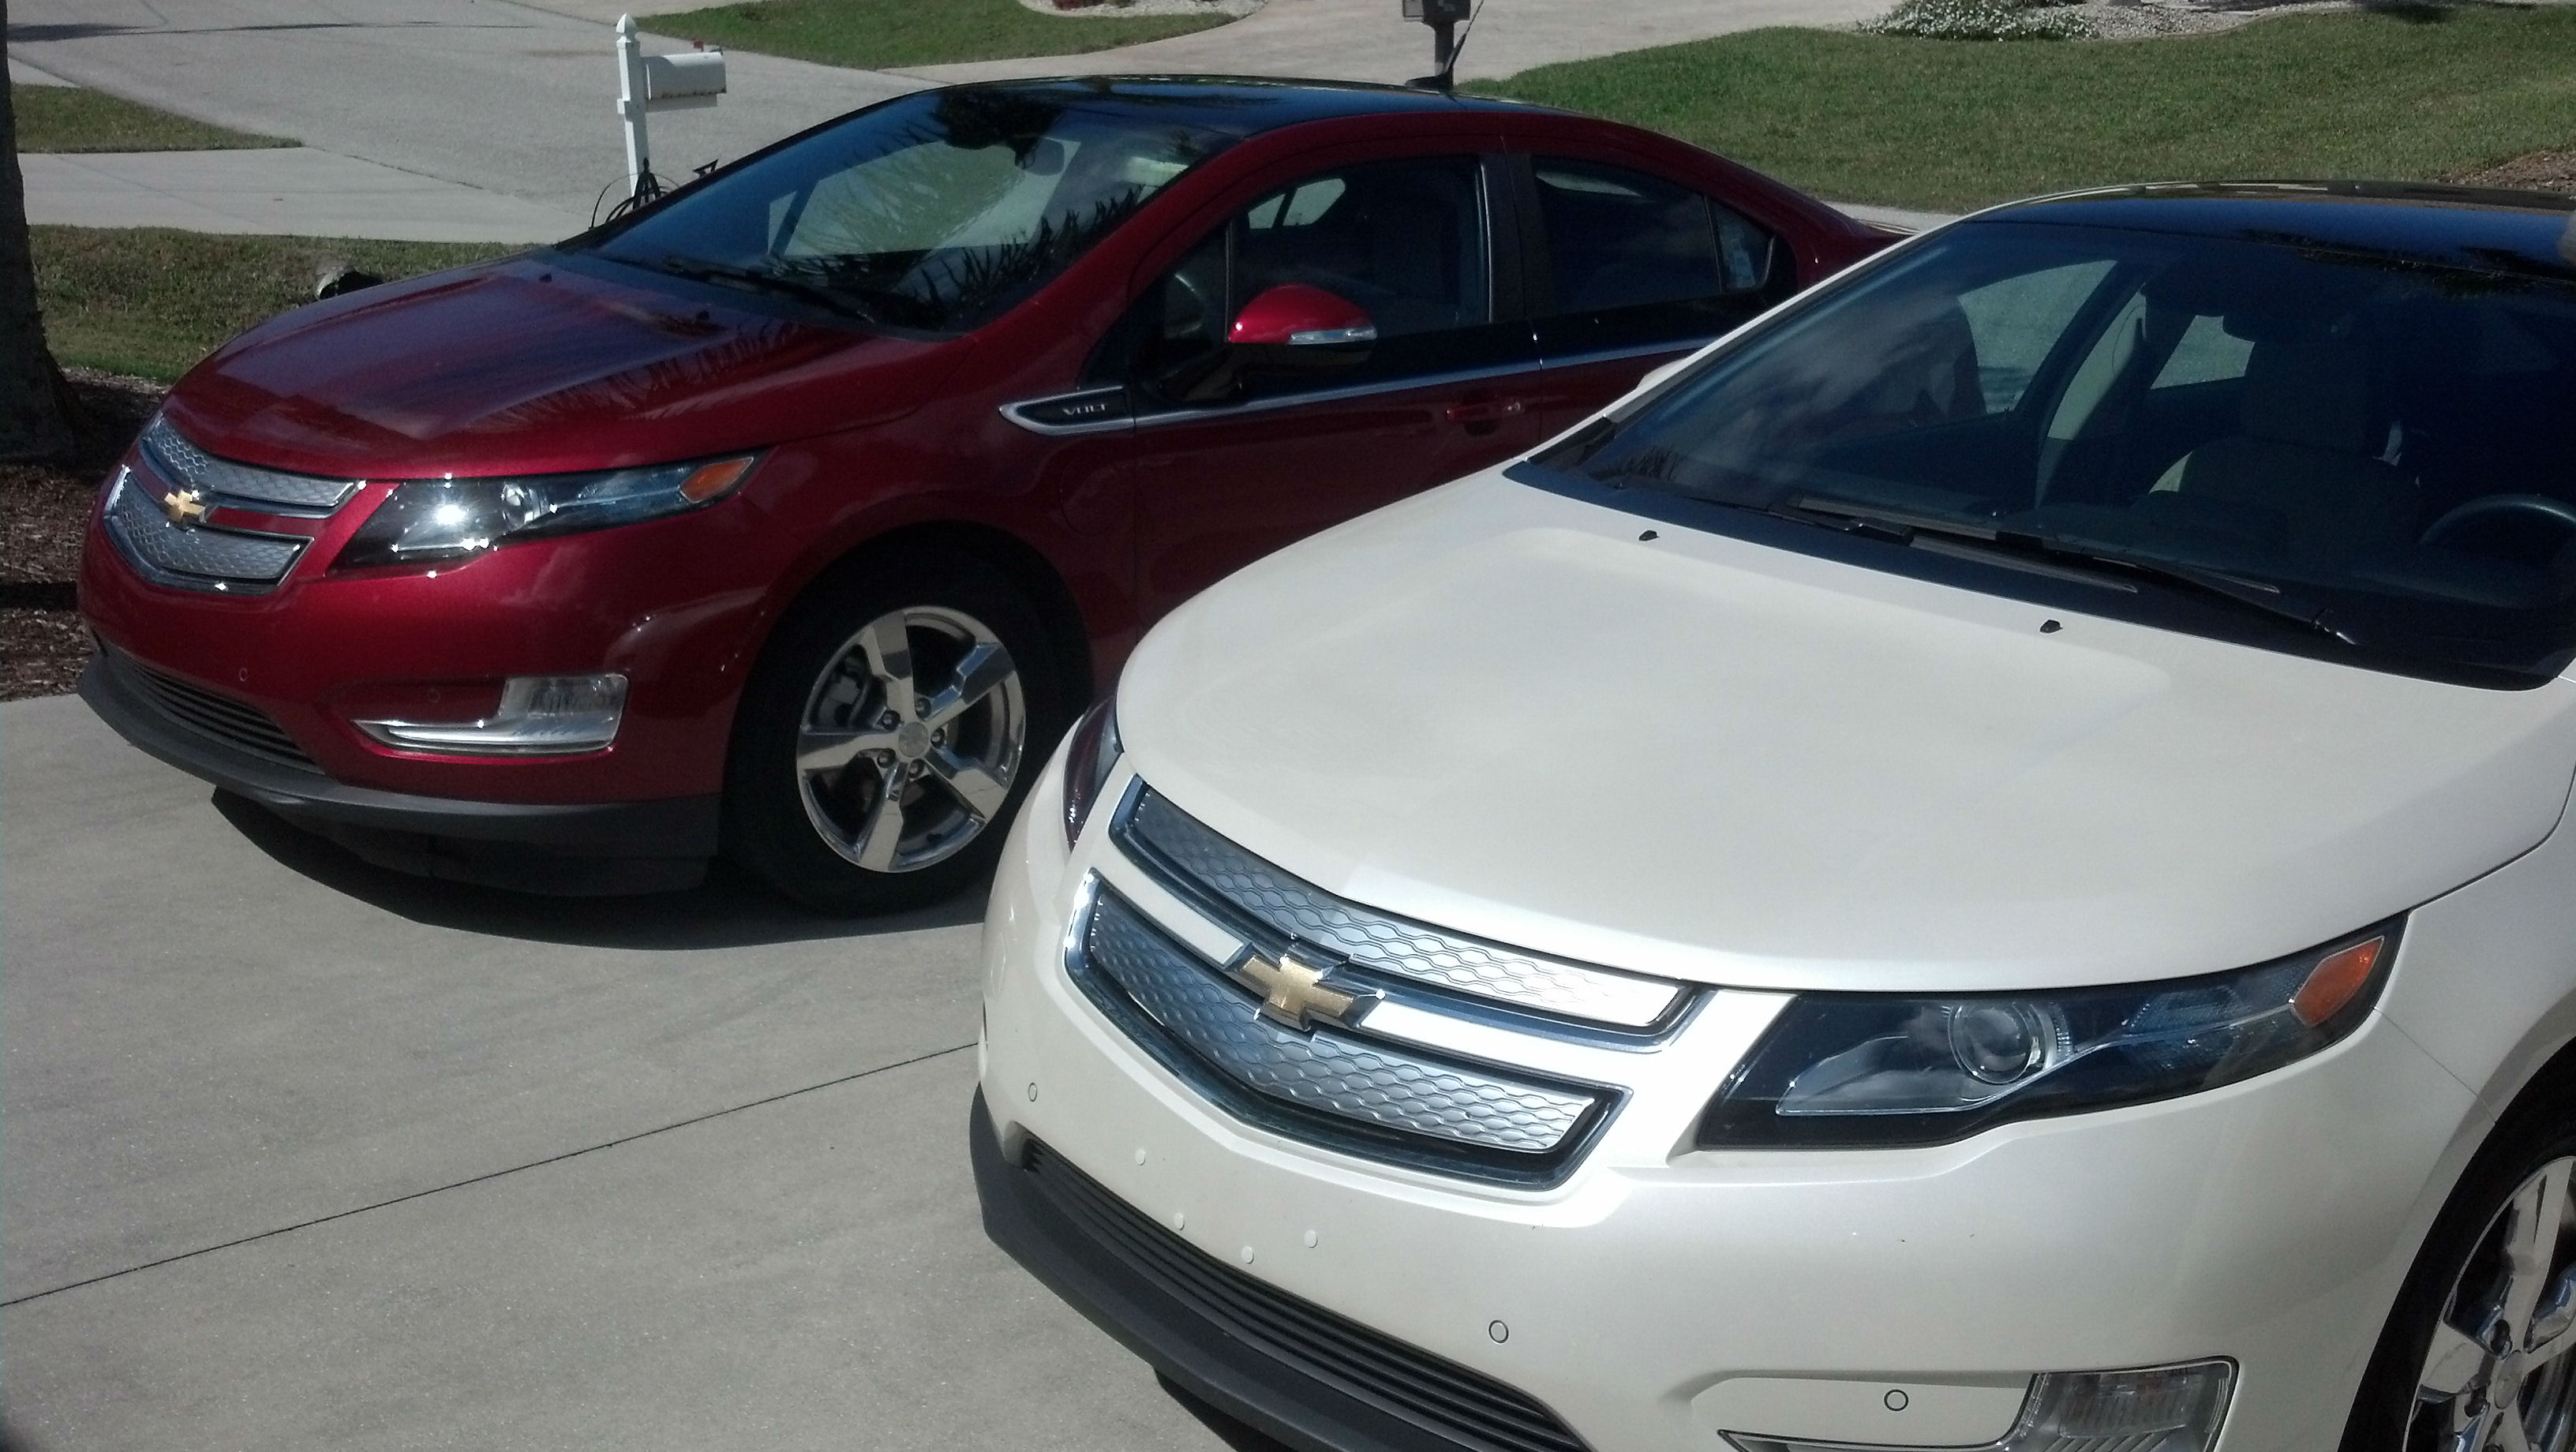 Volt siblings front view 1